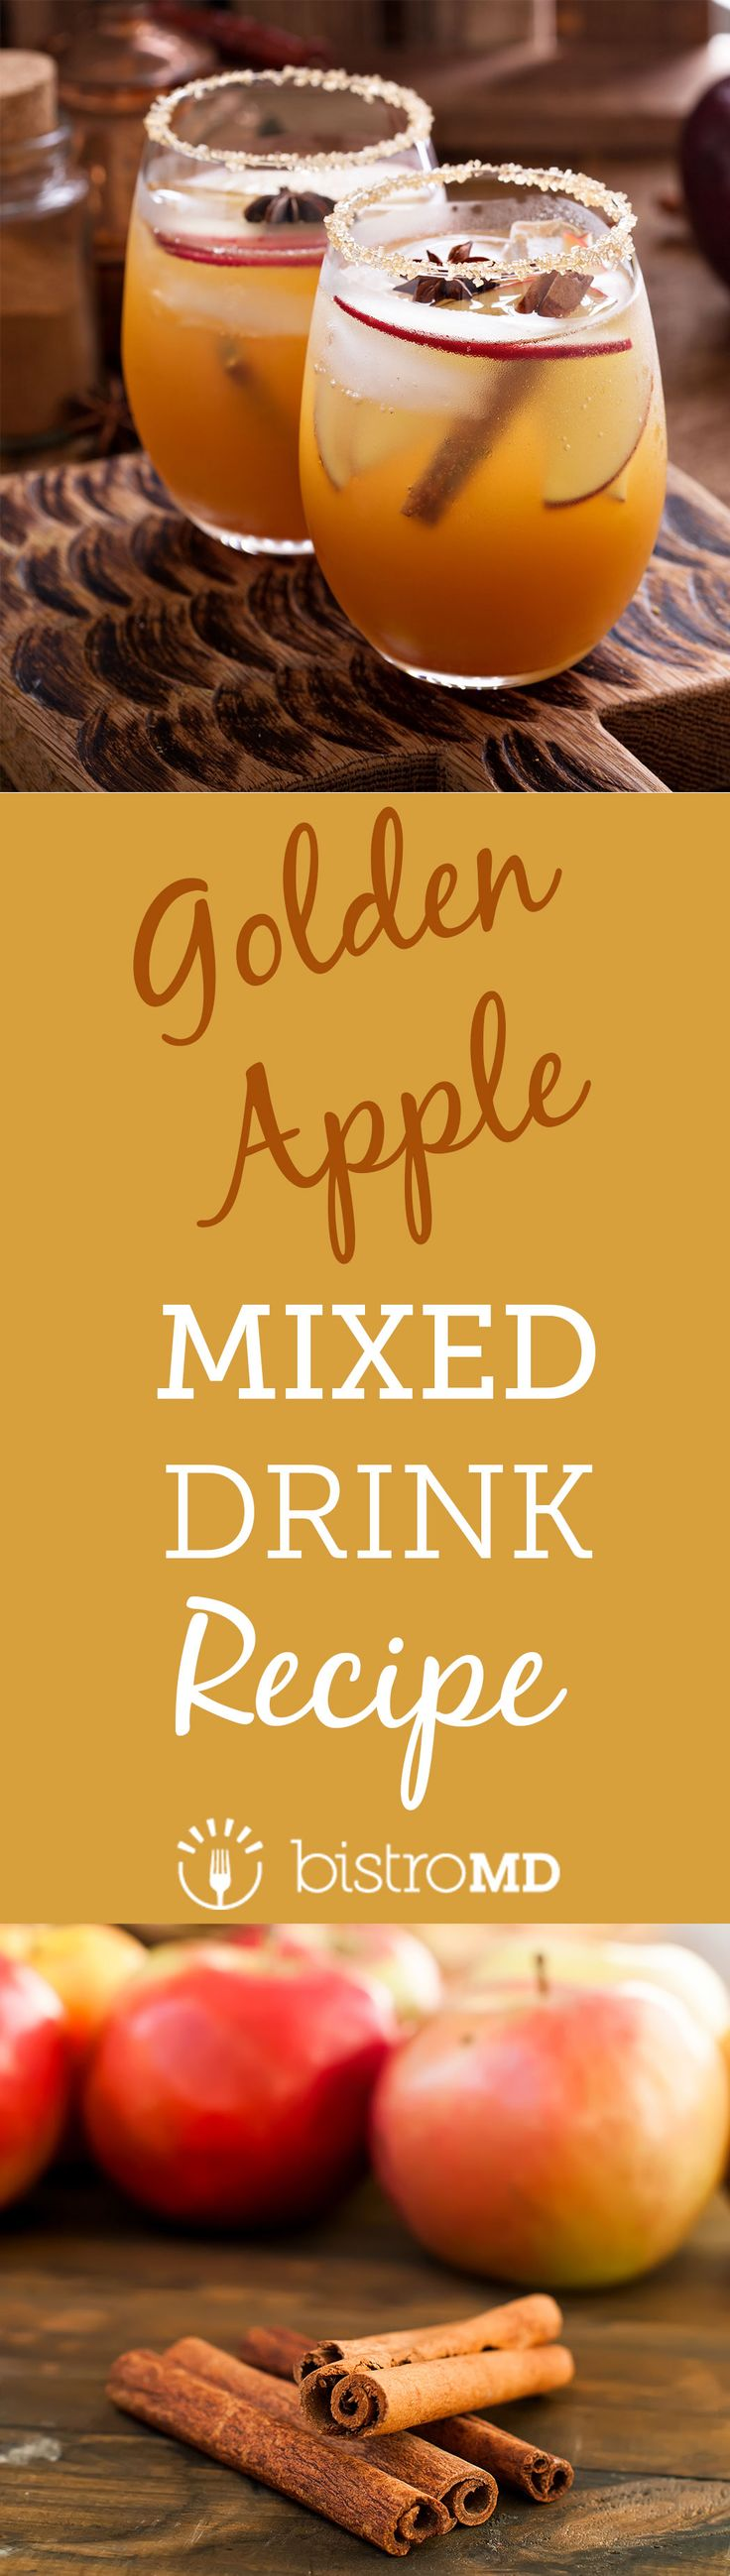 A healthier spin on your favorite fall mixed-drink – apple cider. Try bistroMD's Golden Apple recipe to enjoy a healthy drink without the sacrifice!